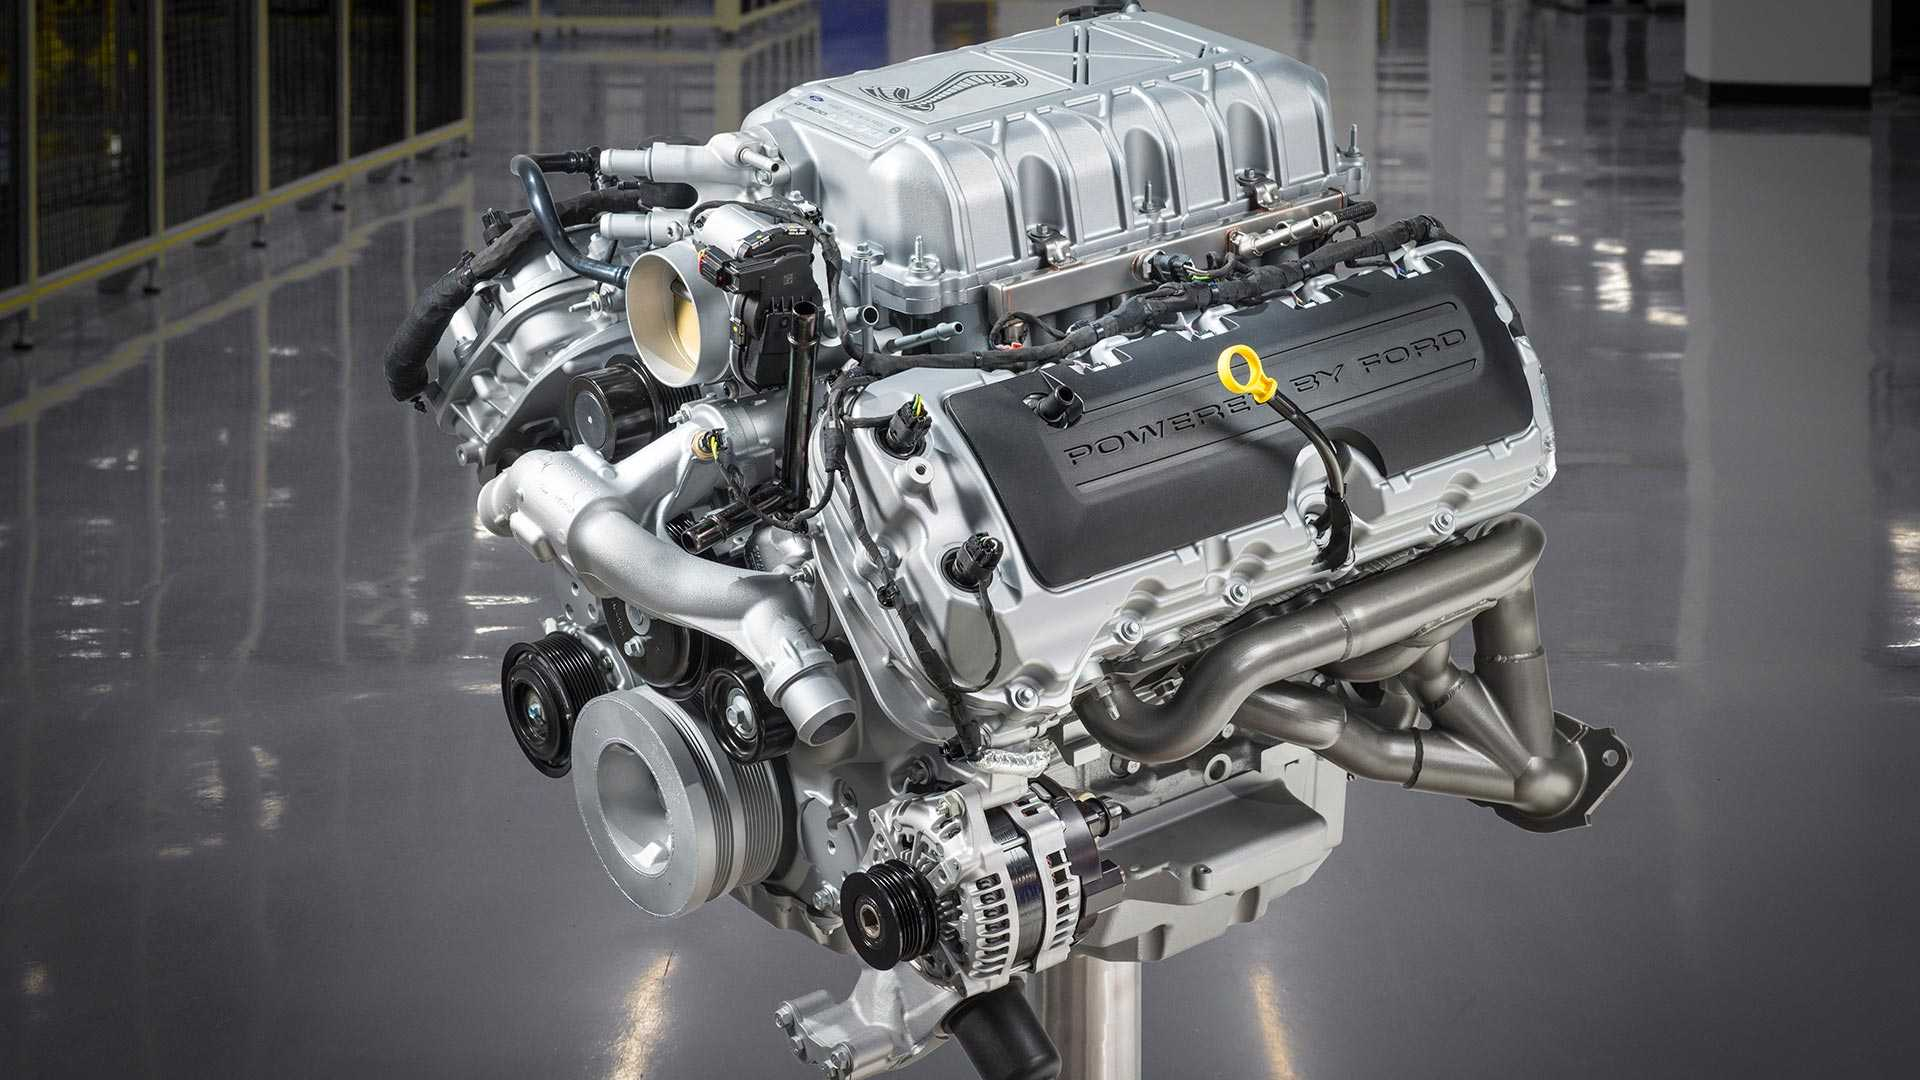 2020-ford-mustang-shelby-gt500-engine